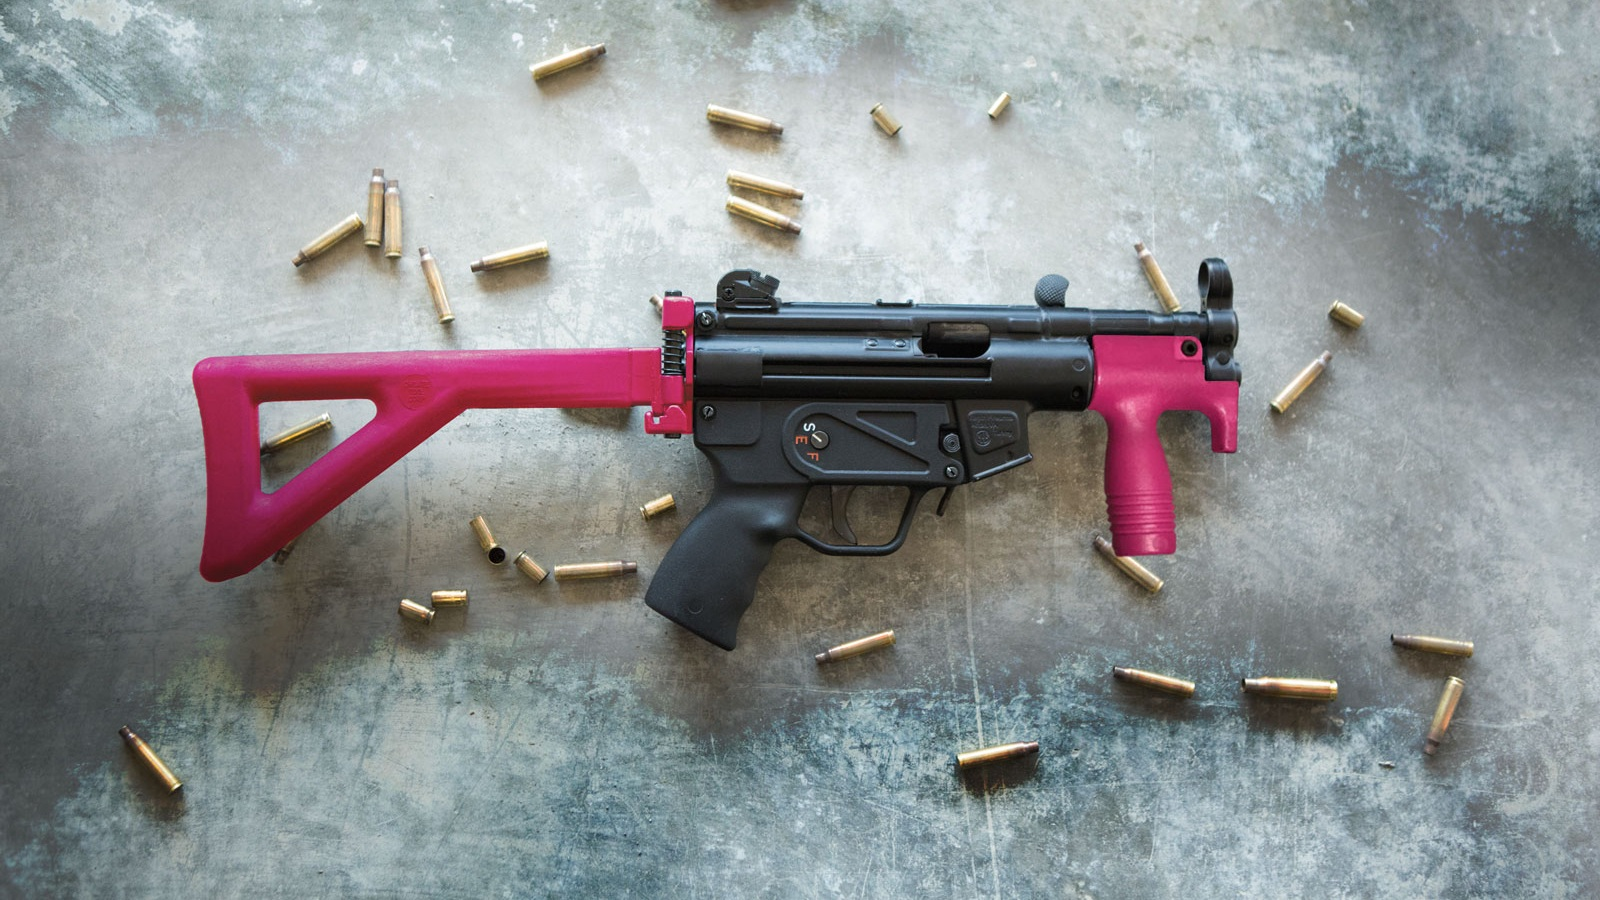 Lady Gunfighter Package - Ladies were no stranger to the gunfighter ways, just ask Annie Oakley! The Lady Gunfighter package is a customer favorite with the best all-around firearm combination. This package includes the Pink Glock 17, Pink MP5 and the Pink Shotgun.